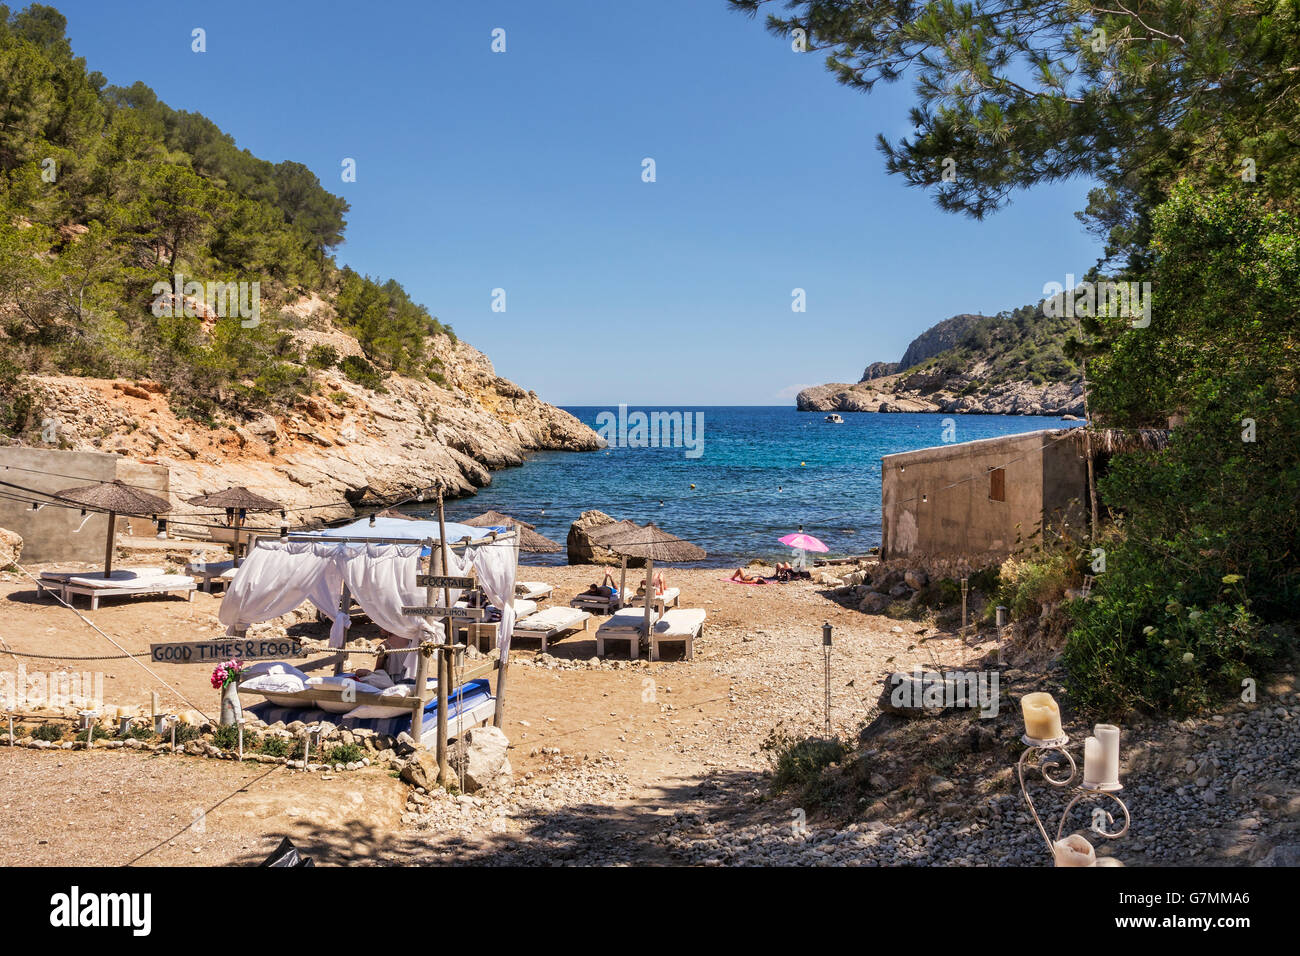 Four poster bed on beach at Puerto de San Miguel, Ibiza, Spain, - Stock Image